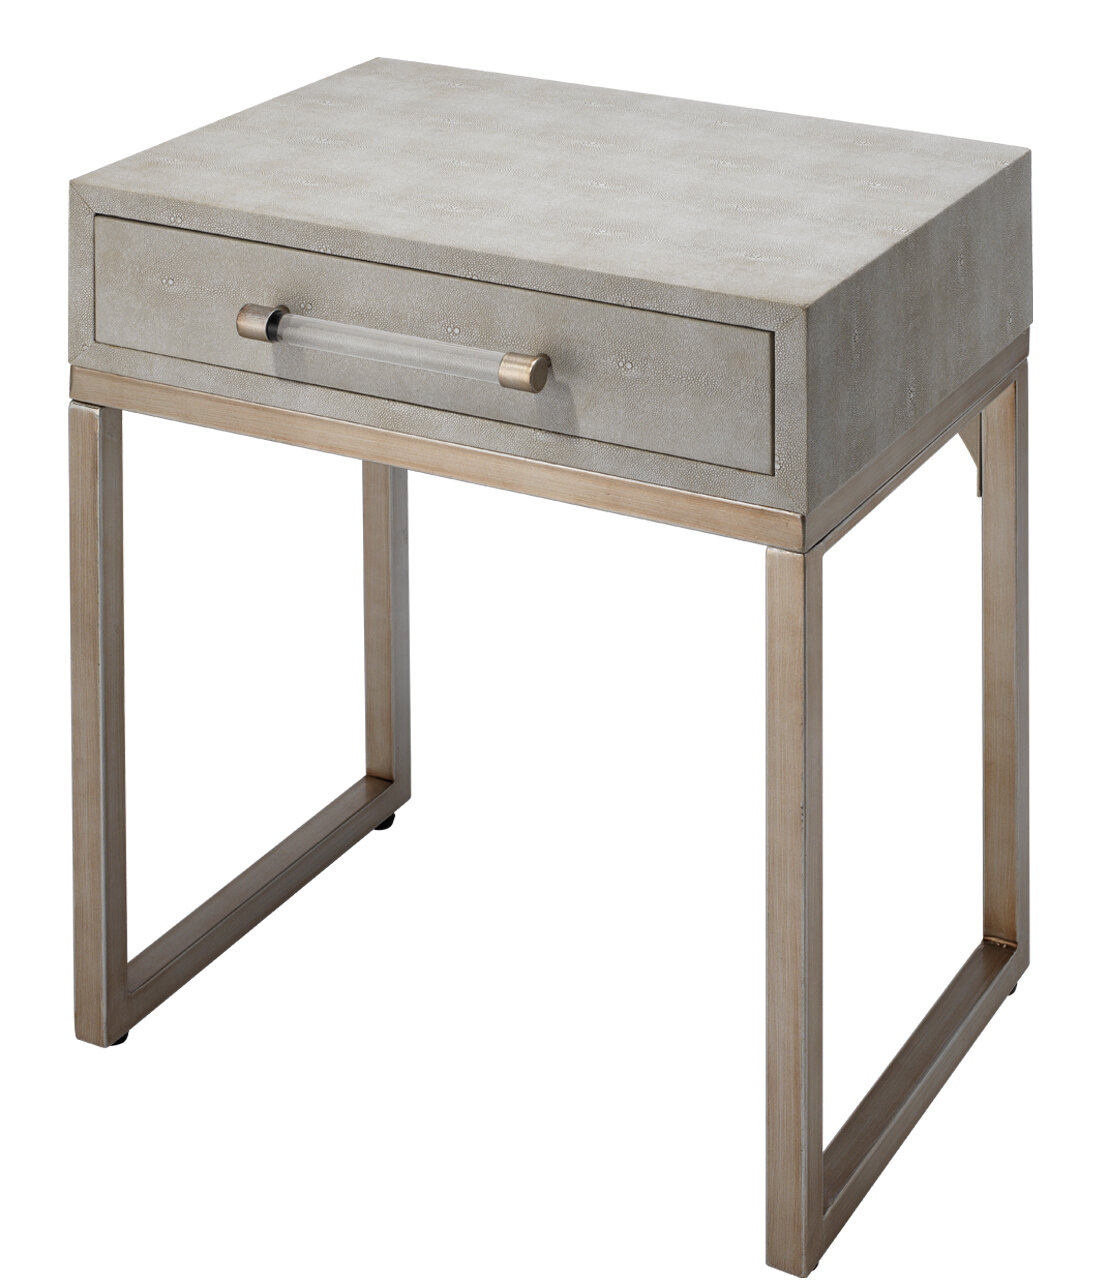 Wrought Studio Saunier Sled End Table With Storage Reviews Wayfair